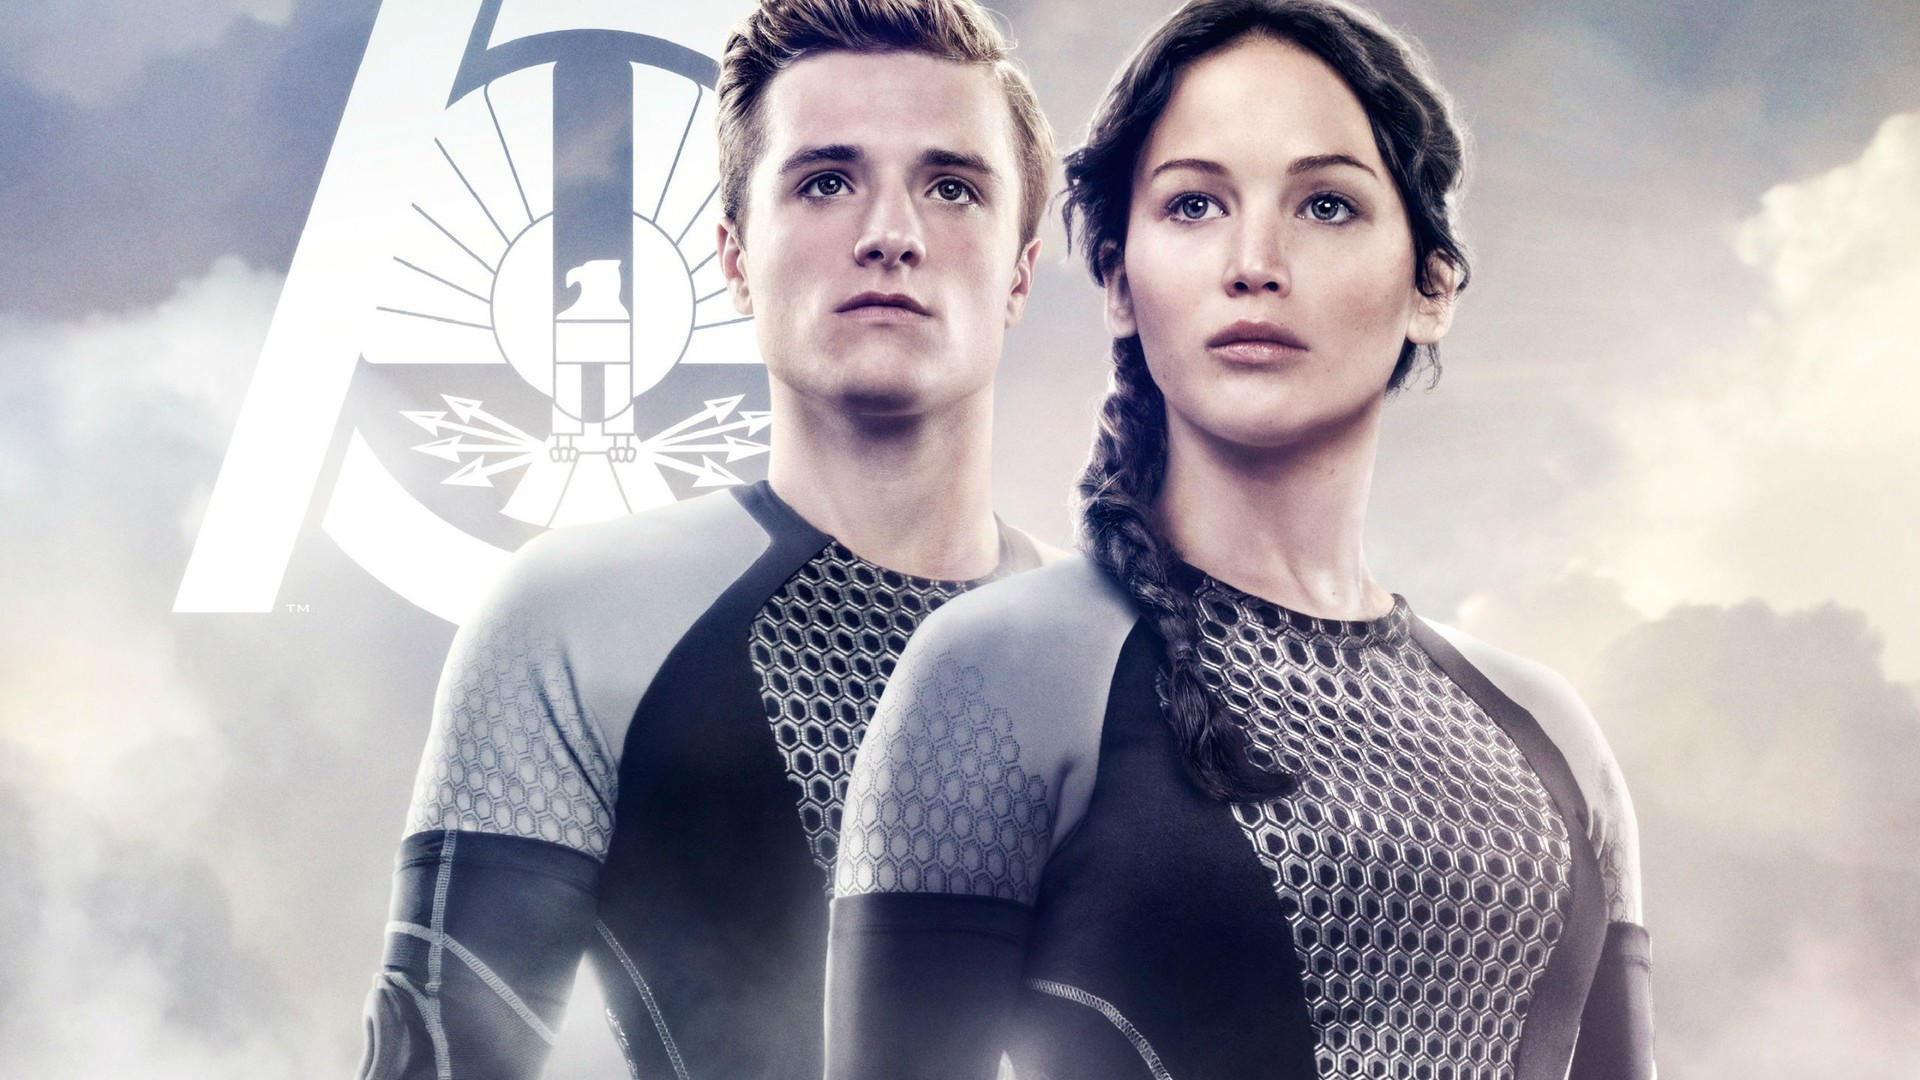 The Hunger Games Wallpaper 18